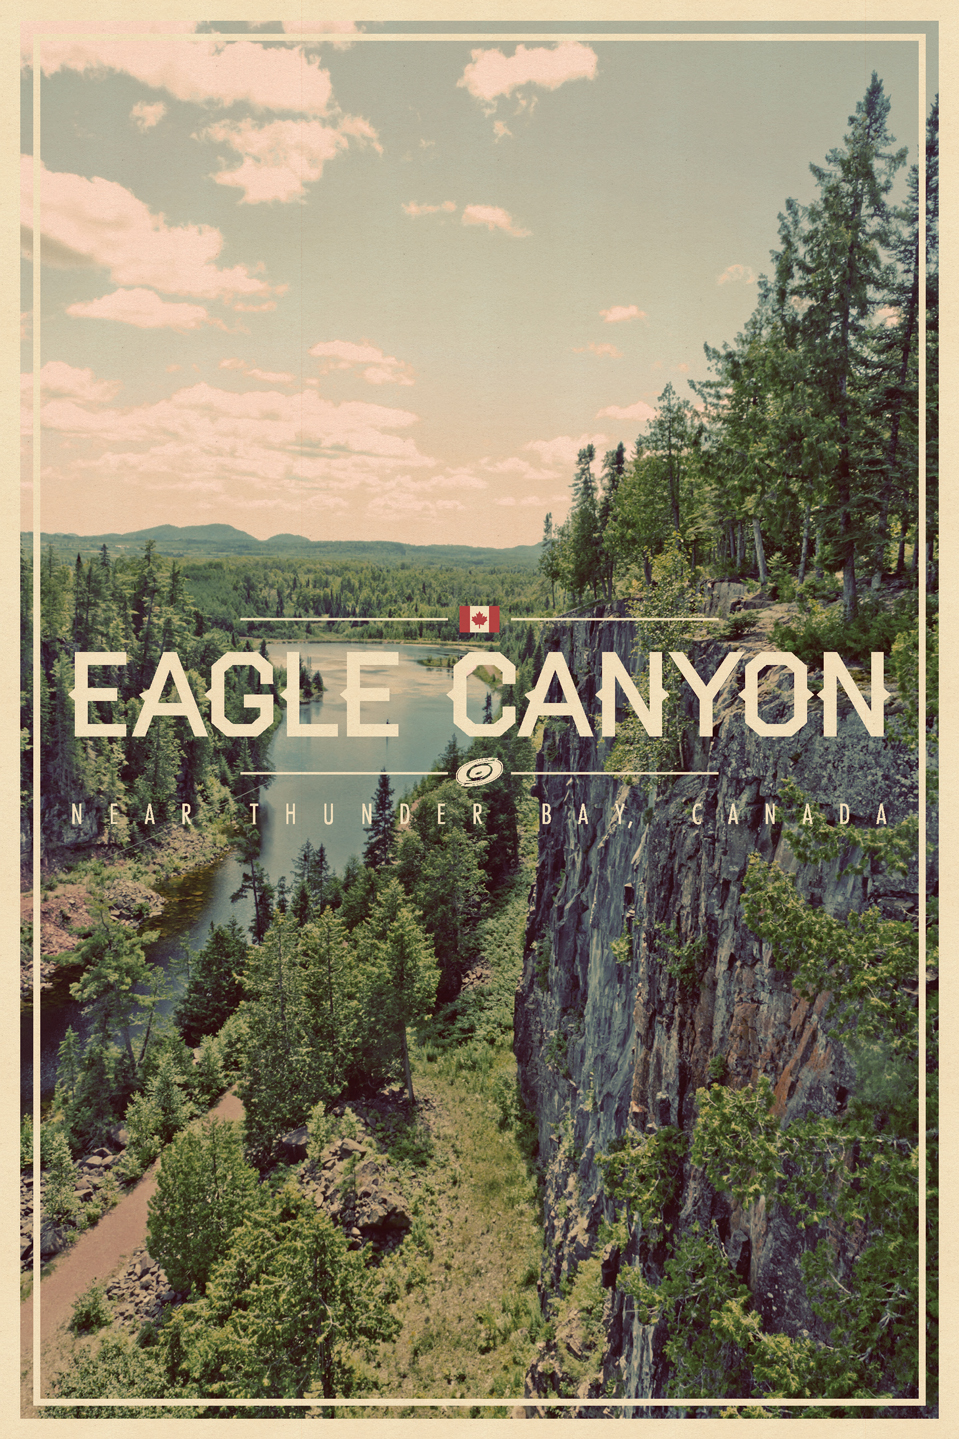 2013—Eagle Canyon